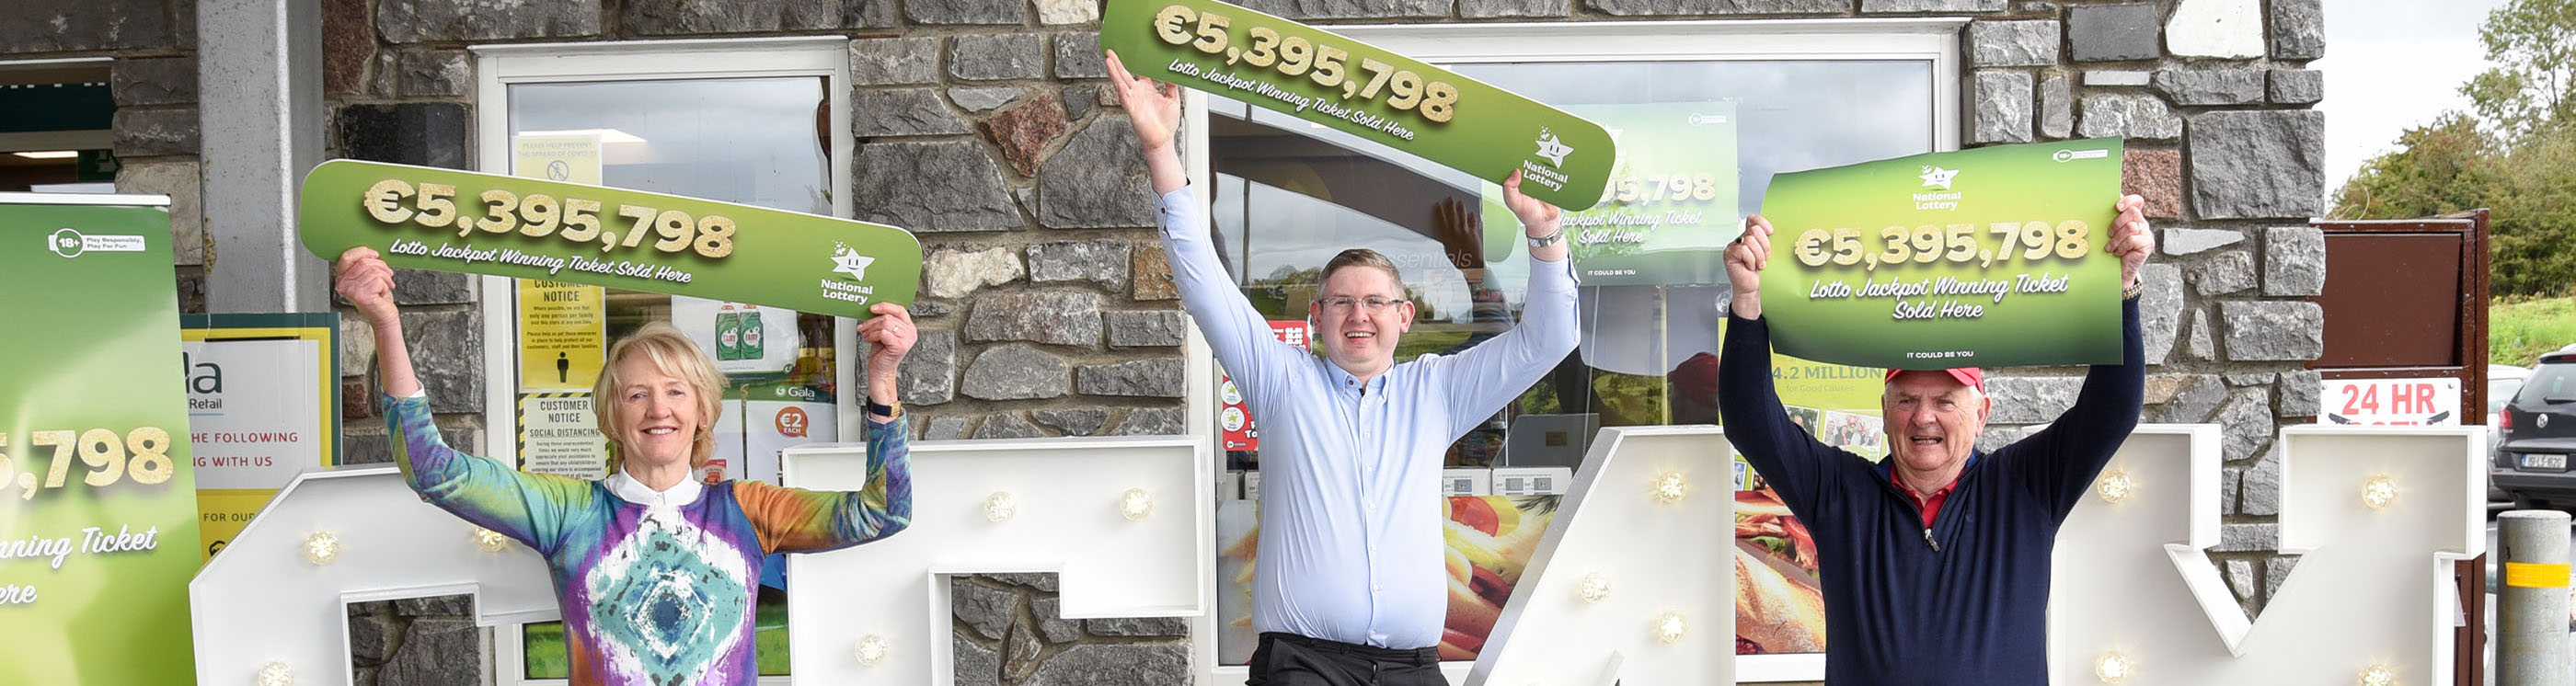 Owner of DeLoughry's Gala service station, Talbot's Inch, Co. Kilkenny with his parents after they sold the winning Lotto ticket